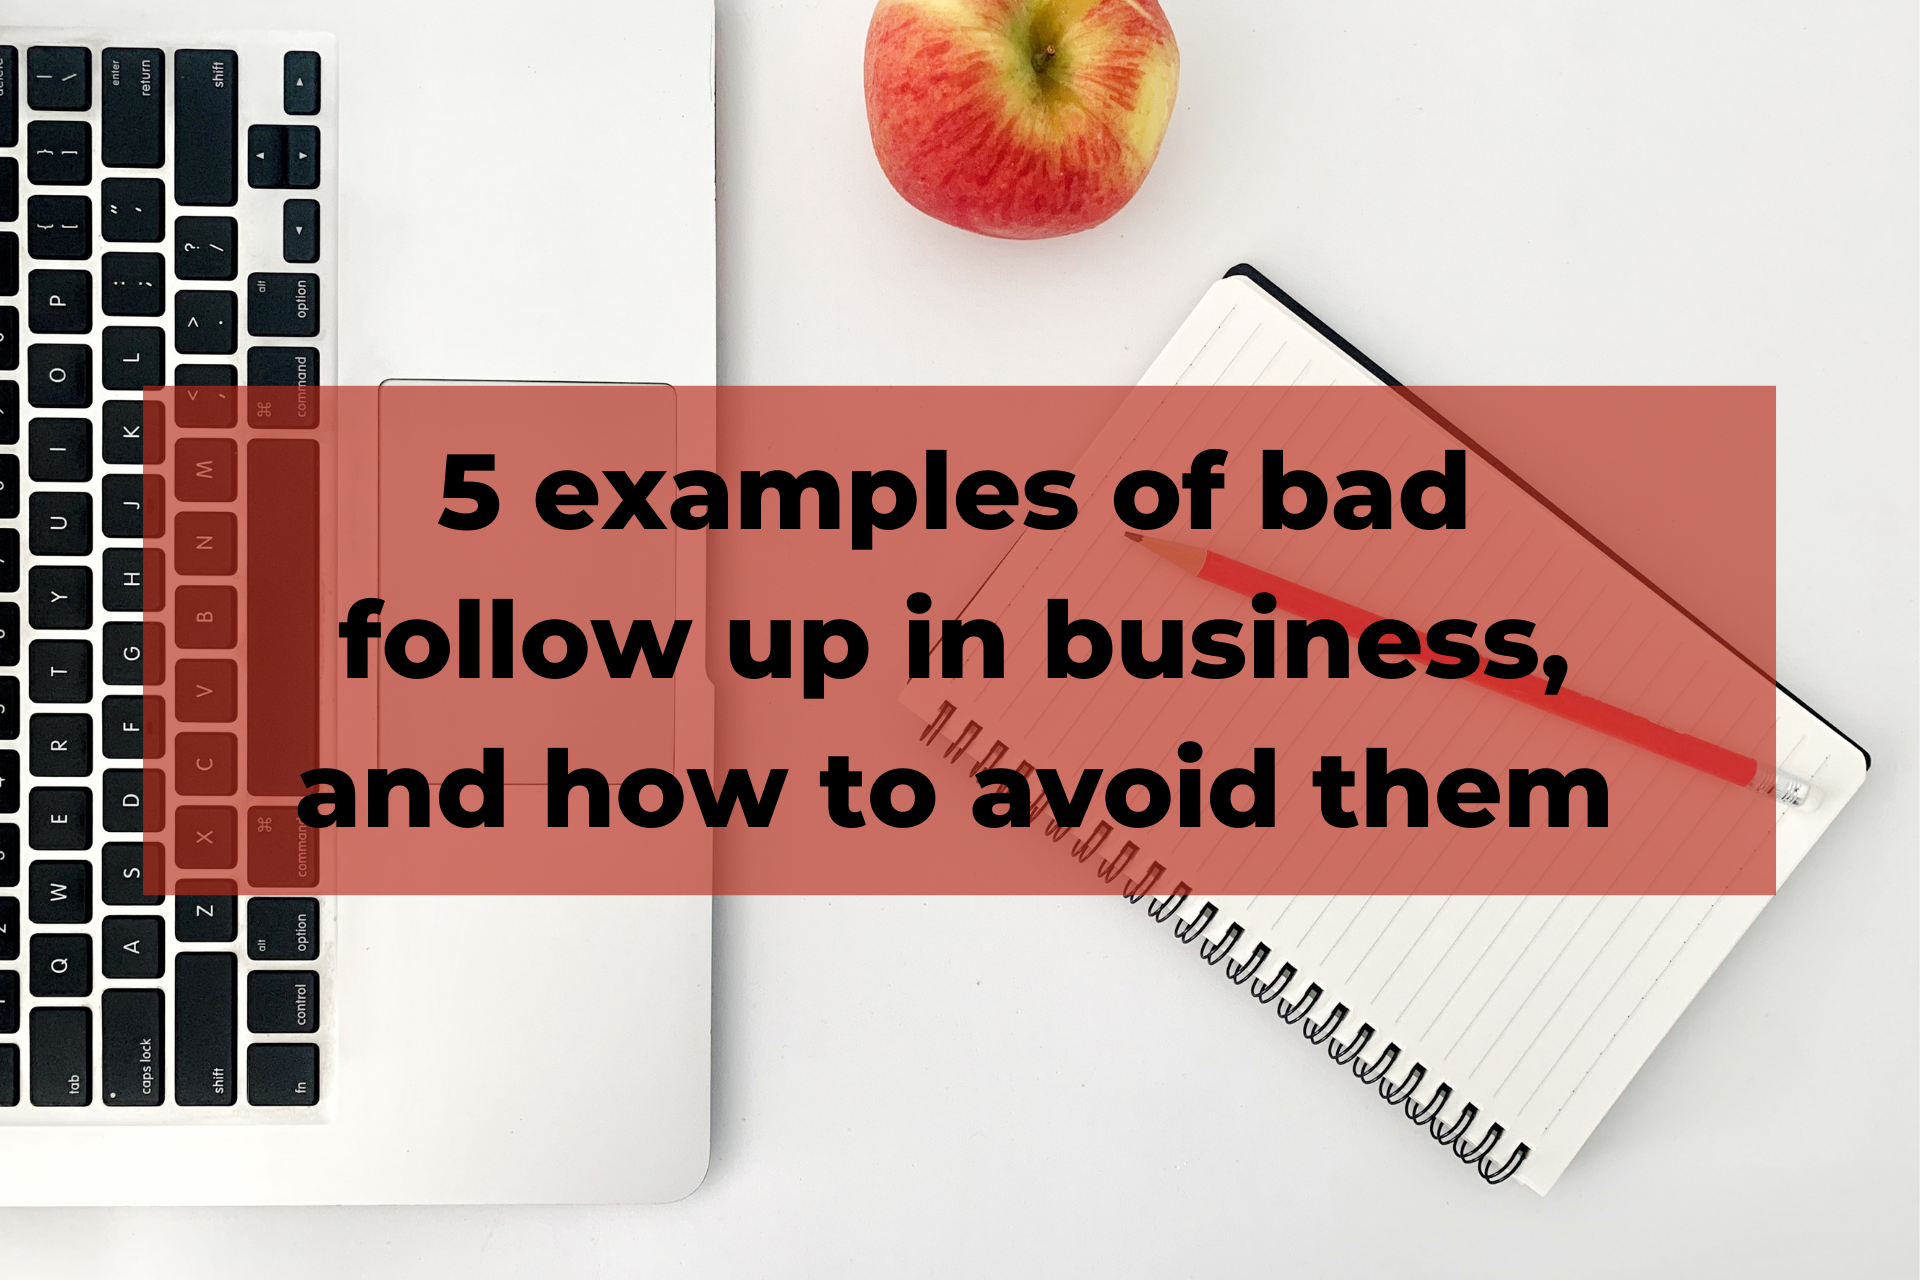 5 examples of bad follow up in business, and how to avoid them